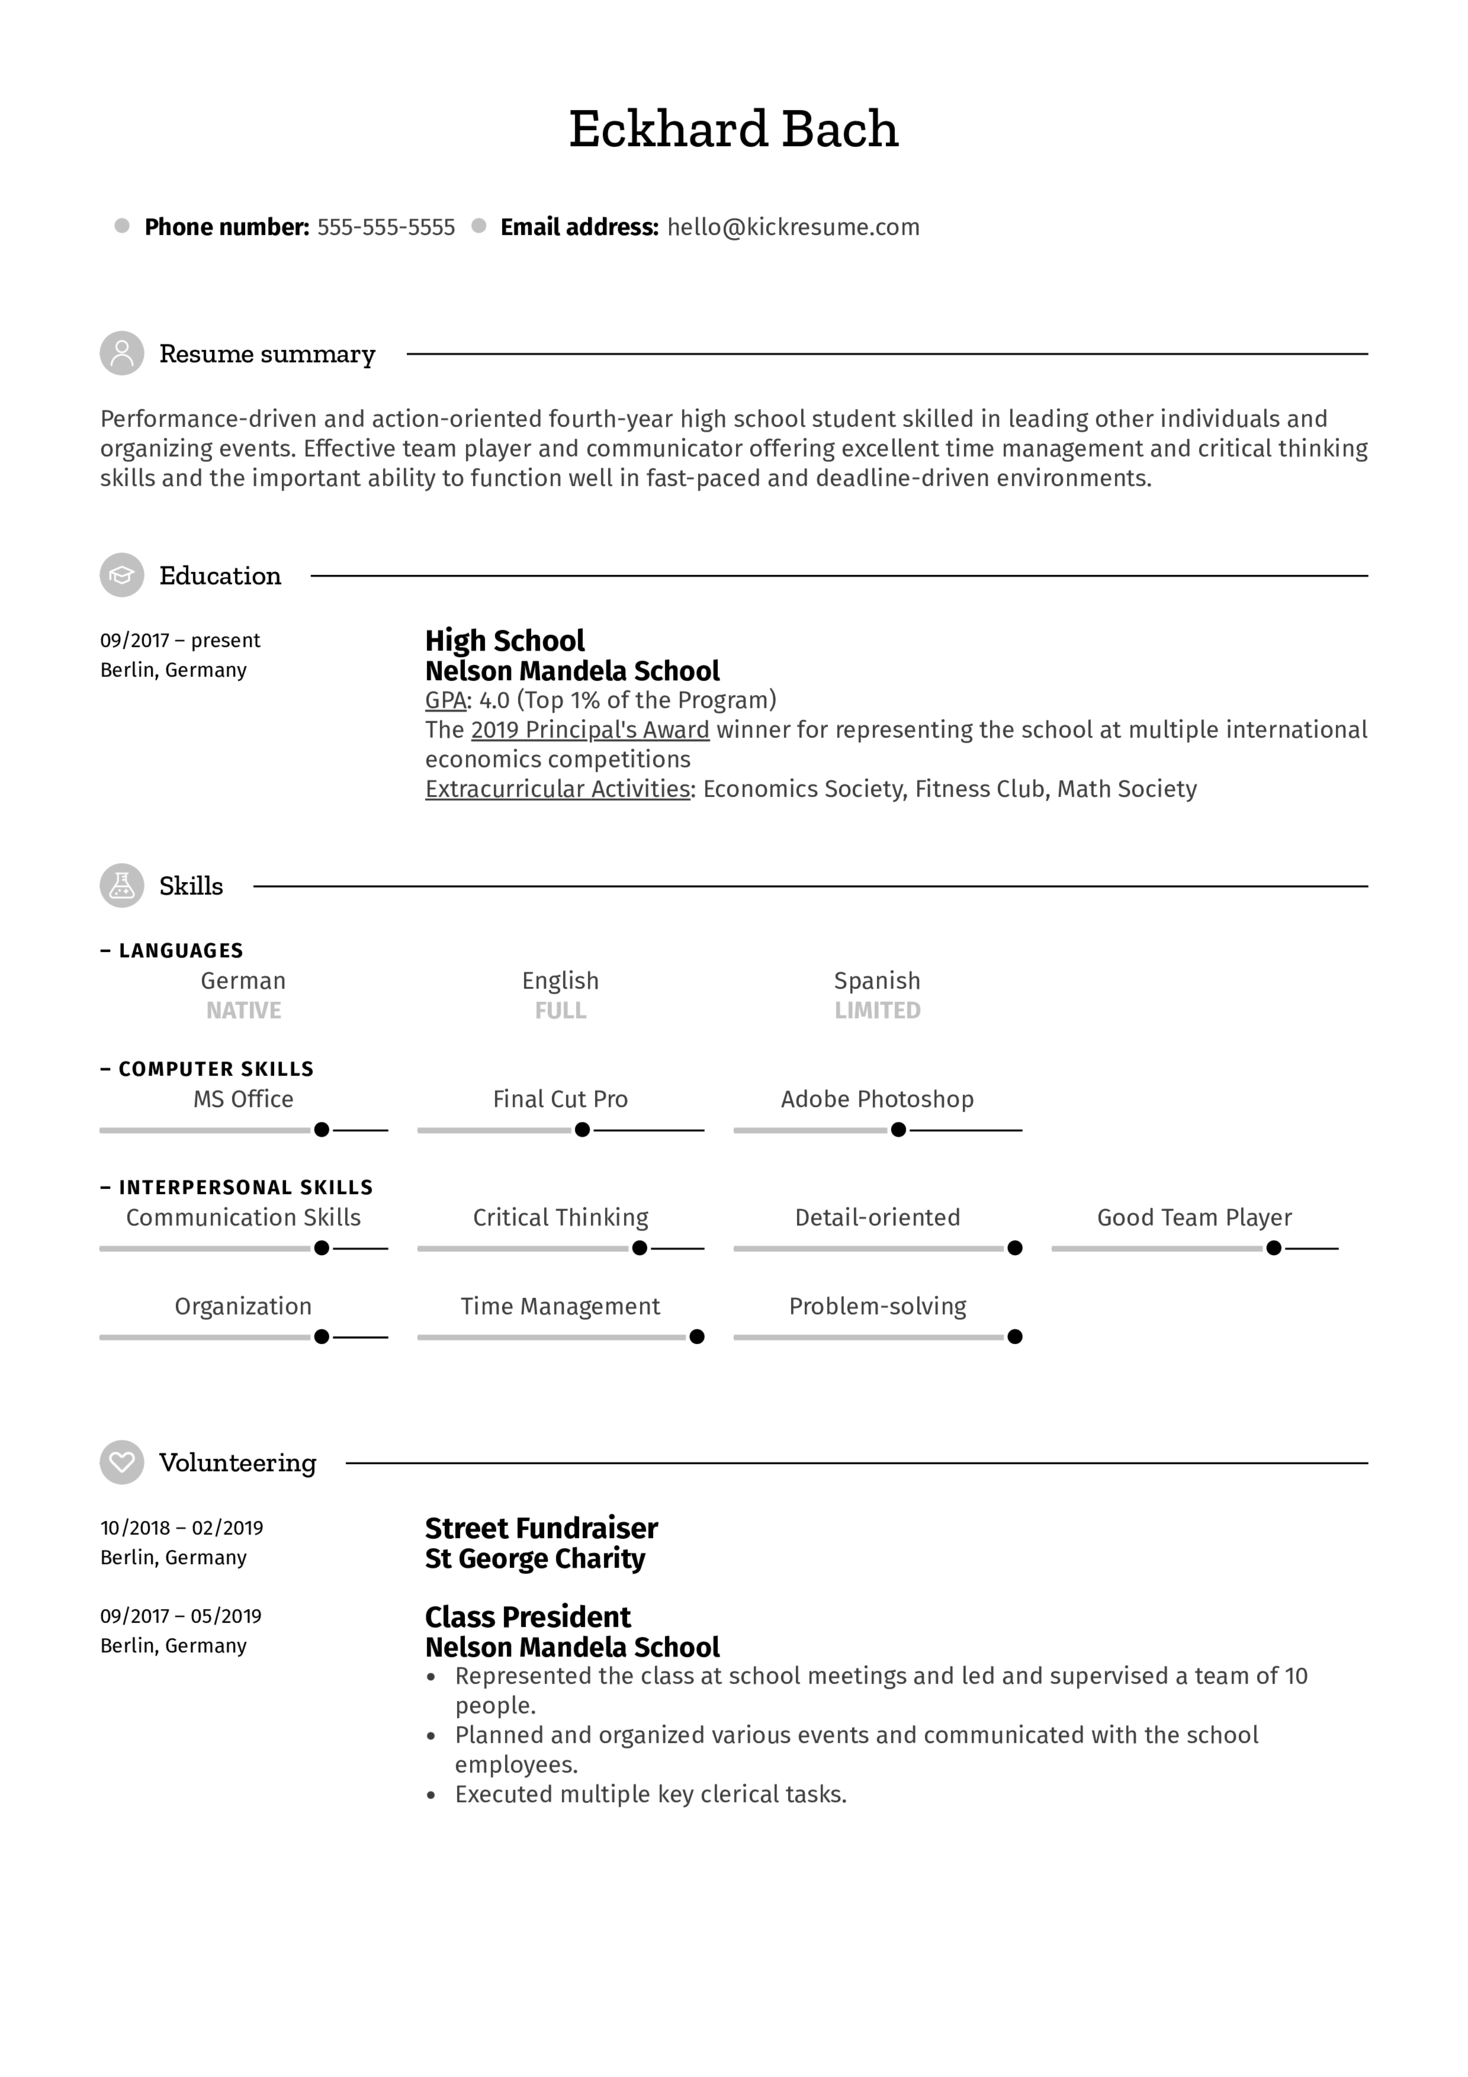 CV Template for the First Job  (Part 1)